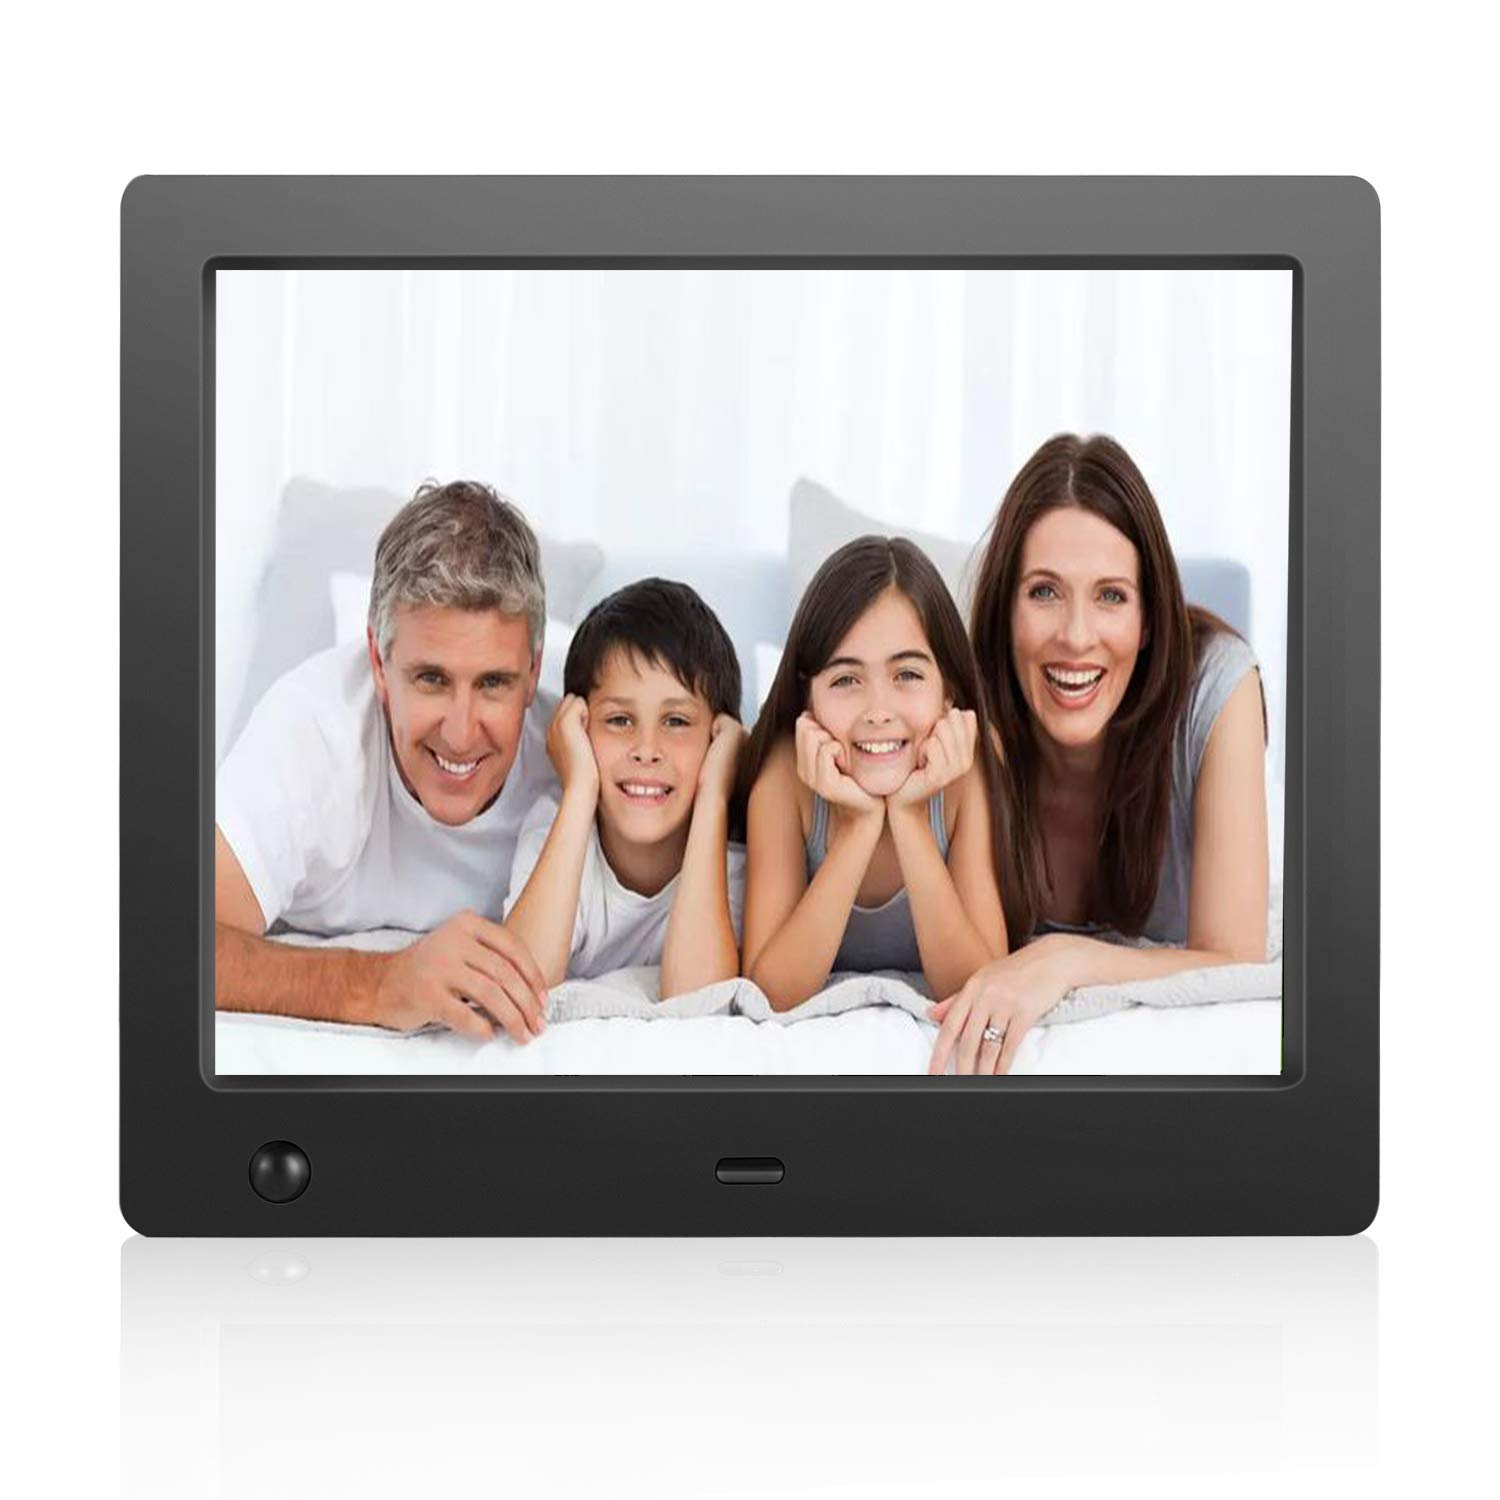 Digital Picture Frame 8 inch Electronic Digital Photo Frame with High Resolution 1024x768 IPS LCD and Motion Sensor/1080P 720P Video Player/Calendar/Time/Remote Control/Best for Gift or Present by FLYAMAPIRIT (Image #1)